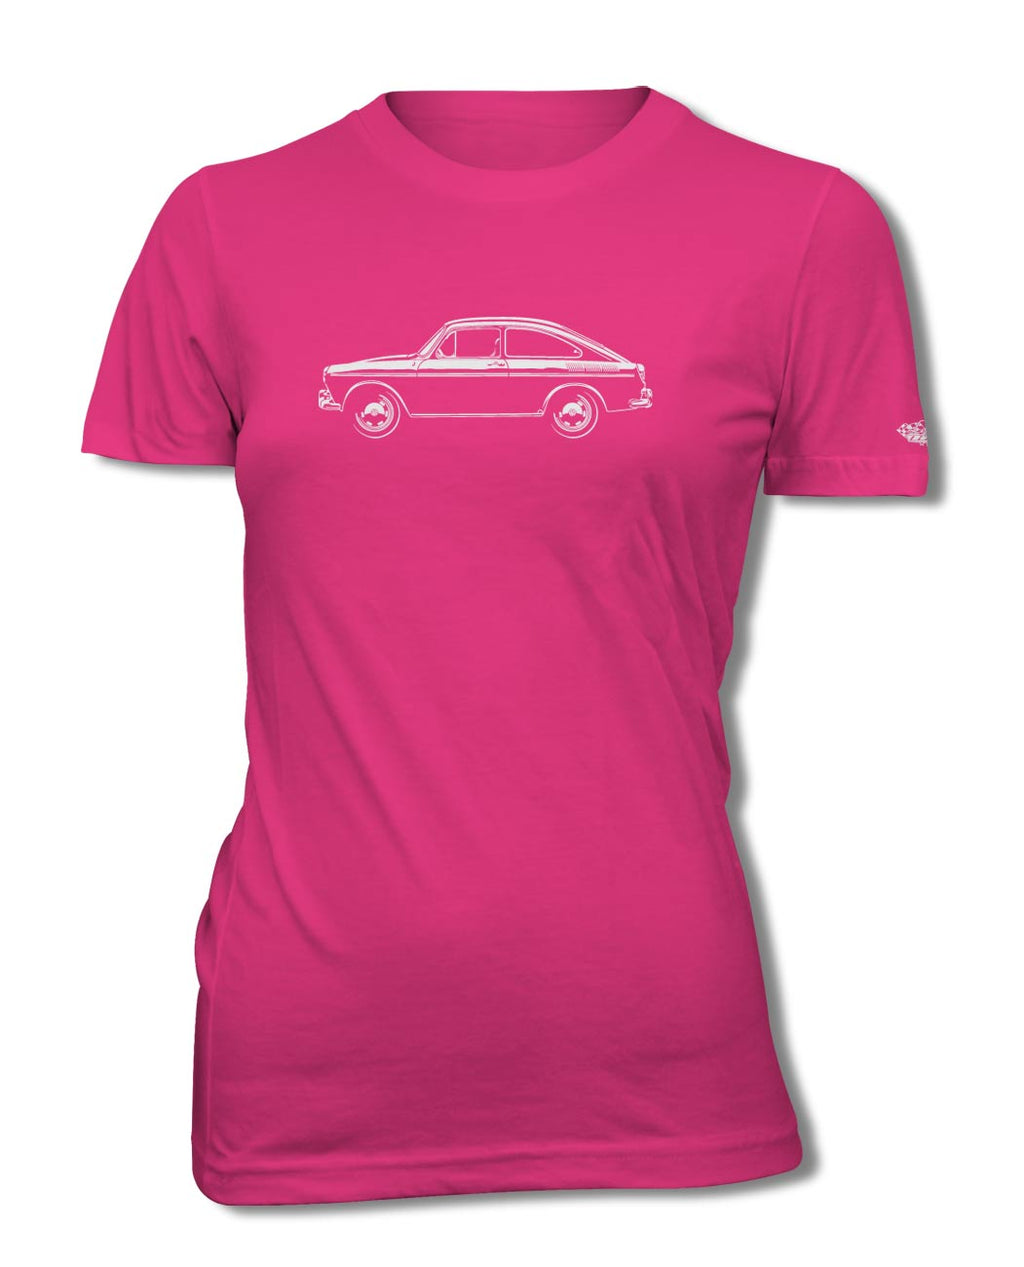 Volkswagen Type 3 Fastback 1600TL T-Shirt - Women - Side View